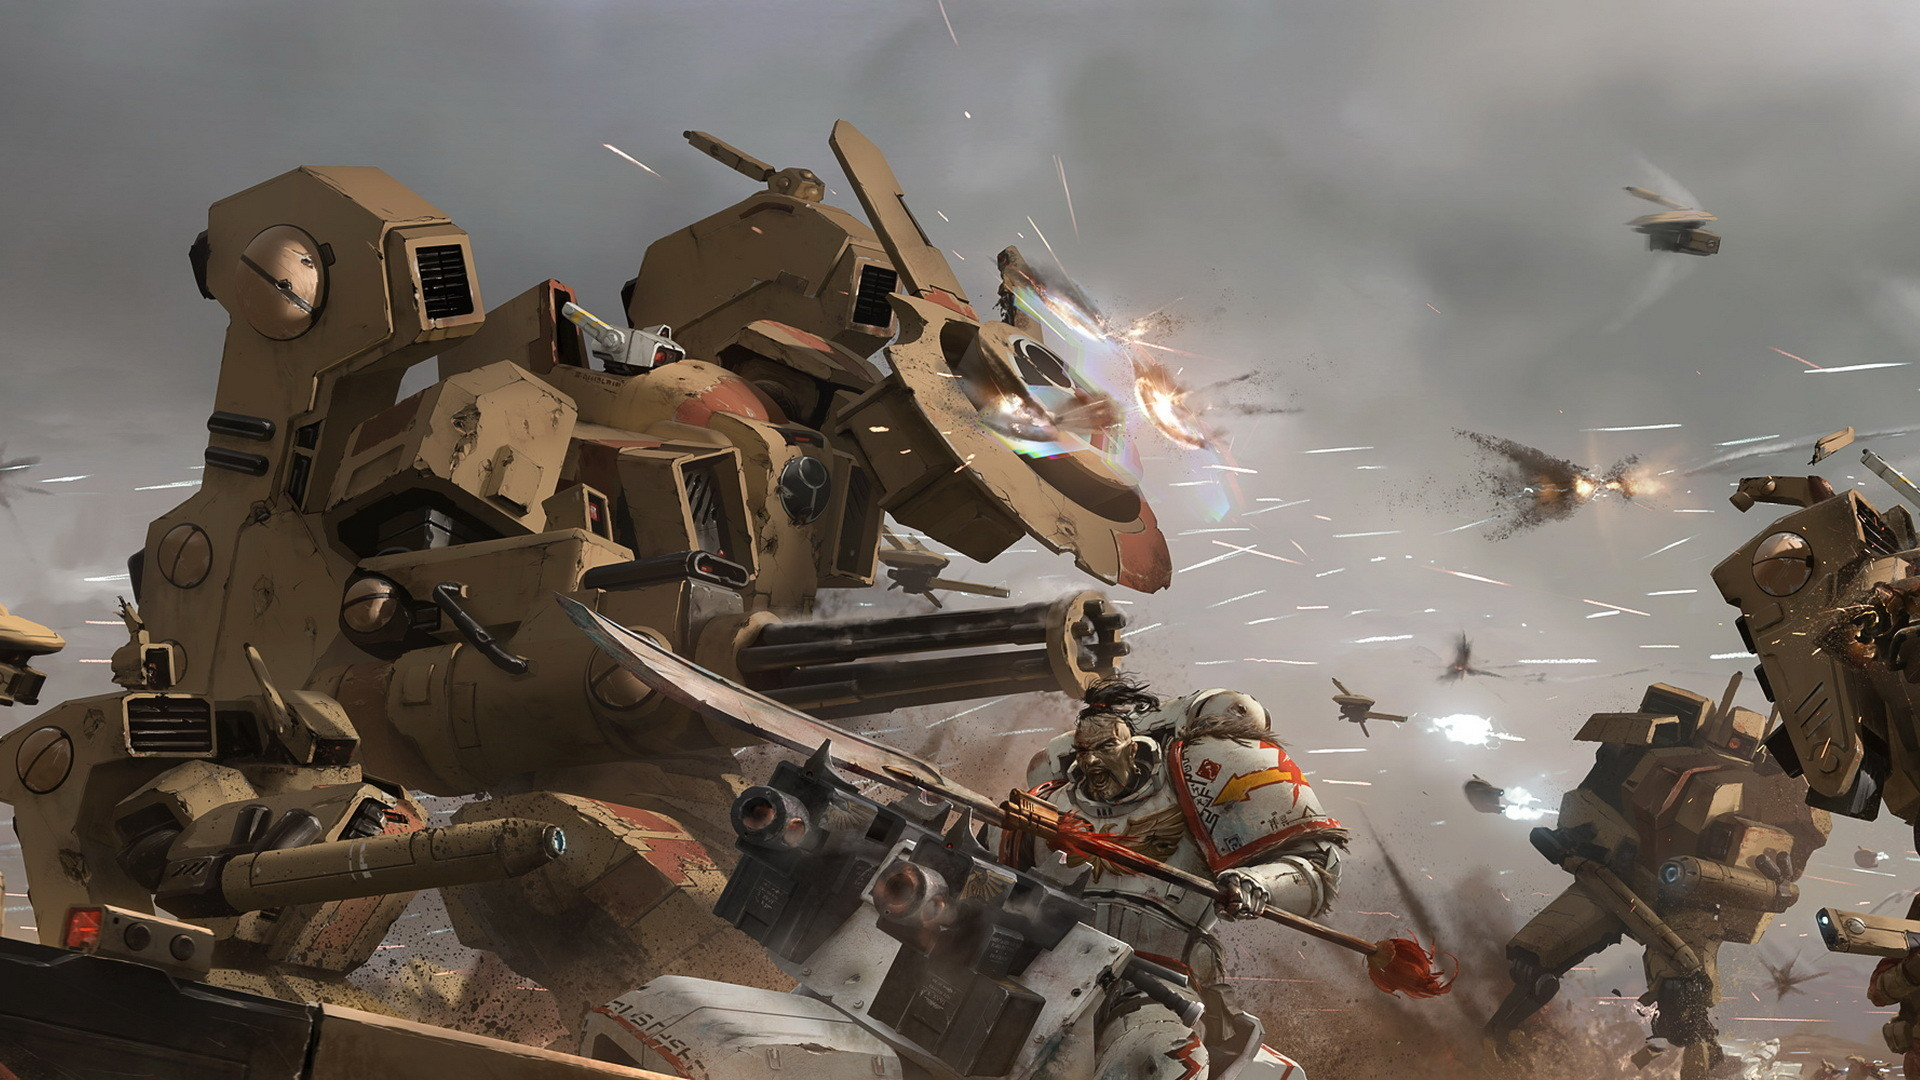 Res: 1920x1080, Video Game - Warhammer 40K Space Marine Battle Warrior Robot Wallpaper